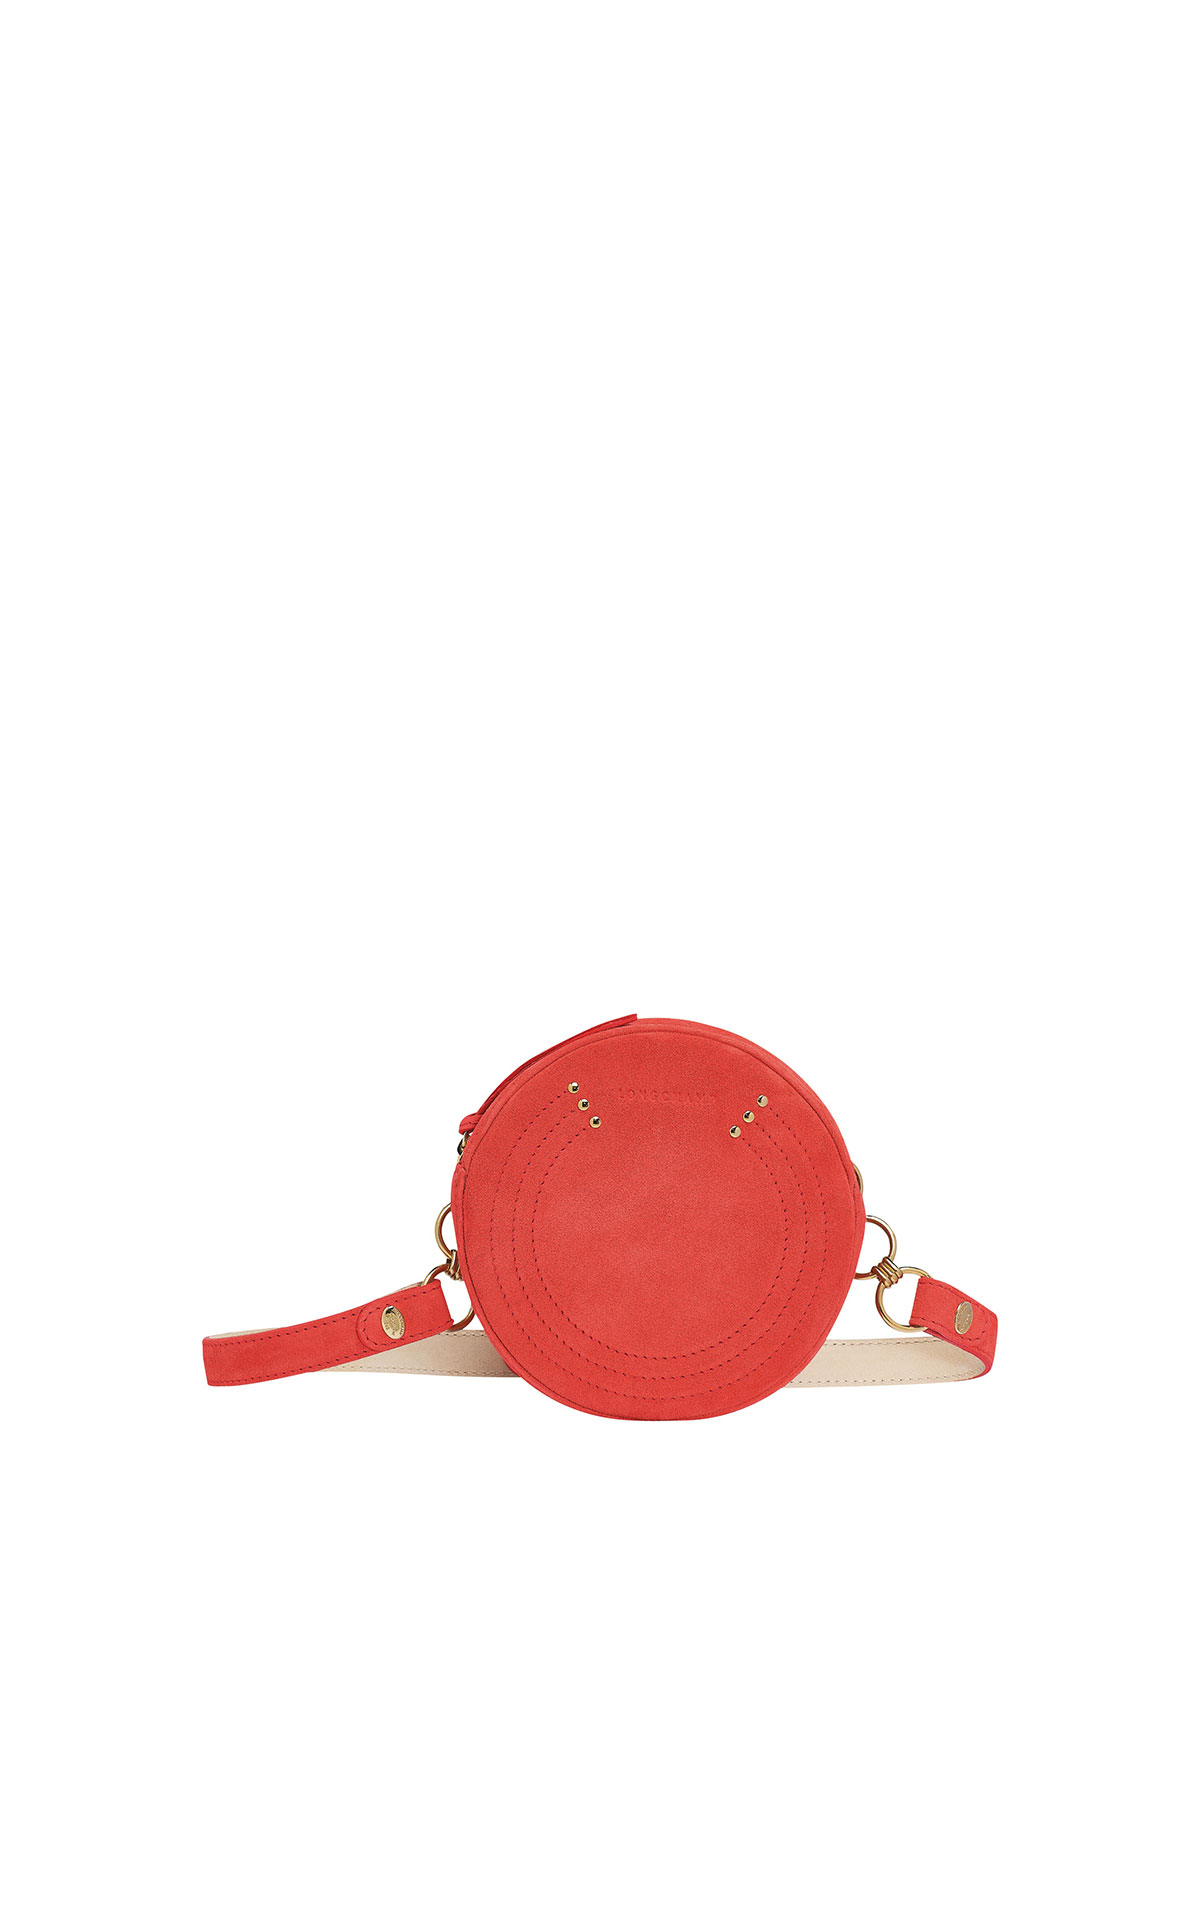 Longchamp Cavalcade belt bag in coral suede from Bicester Village